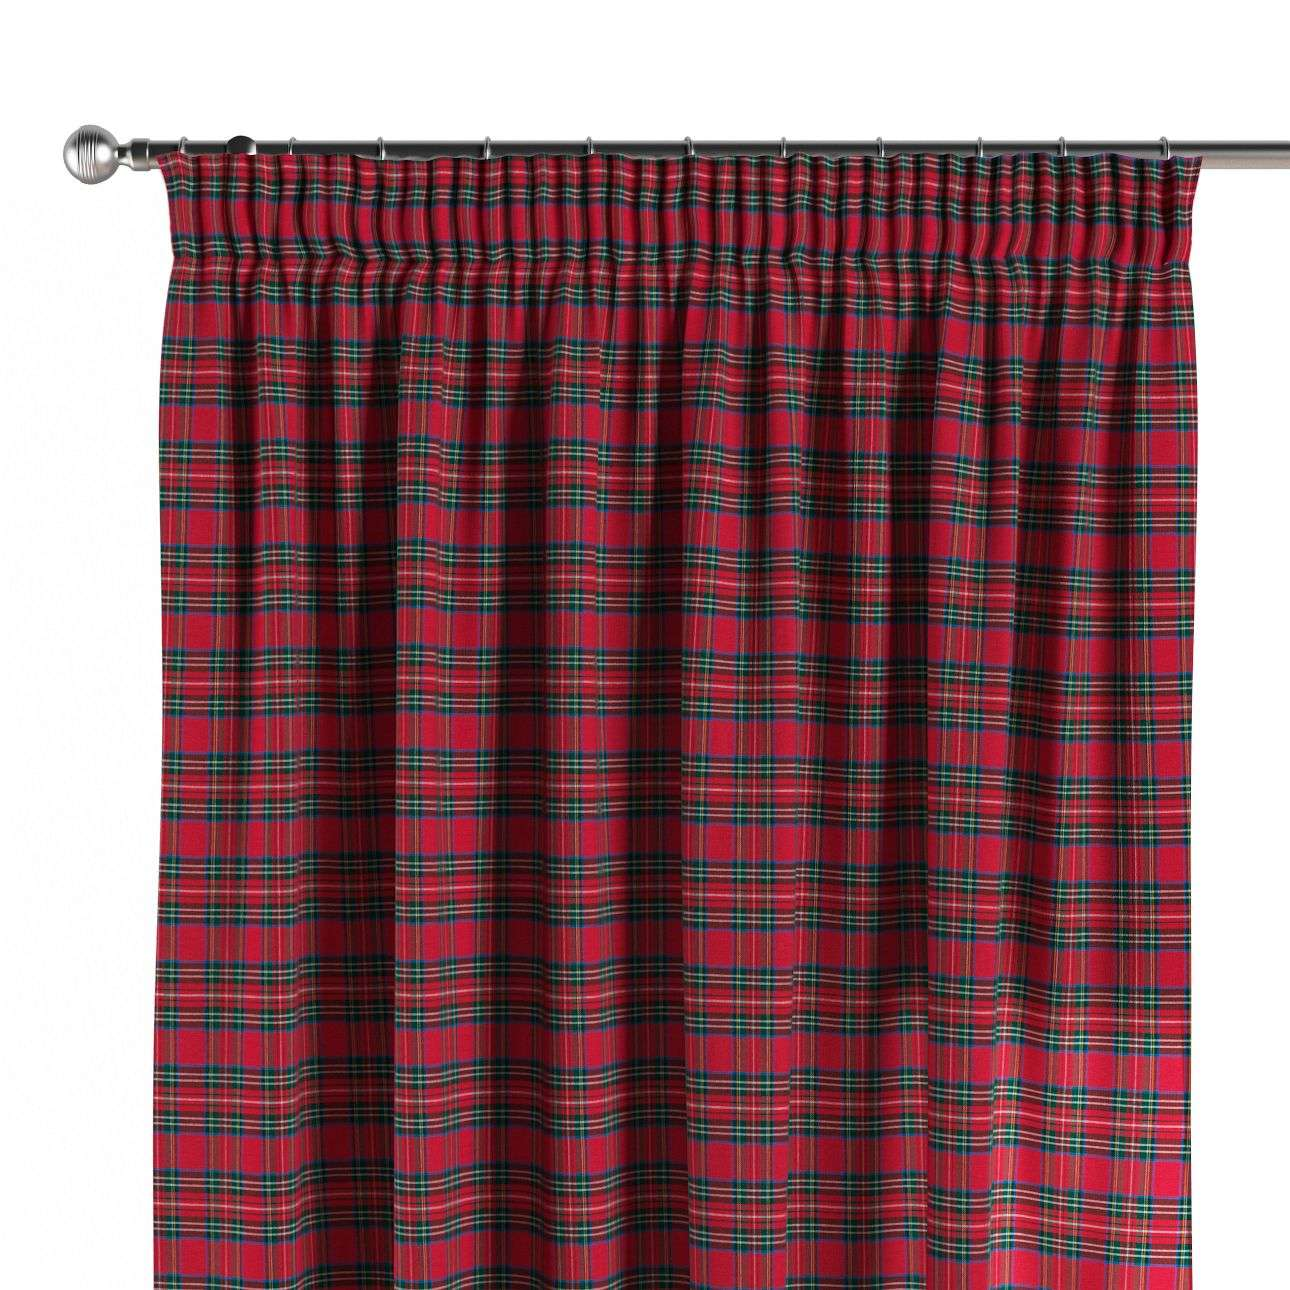 Pencil pleat curtains 130 x 260 cm (51 x 102 inch) in collection Christmas, fabric: 126-29